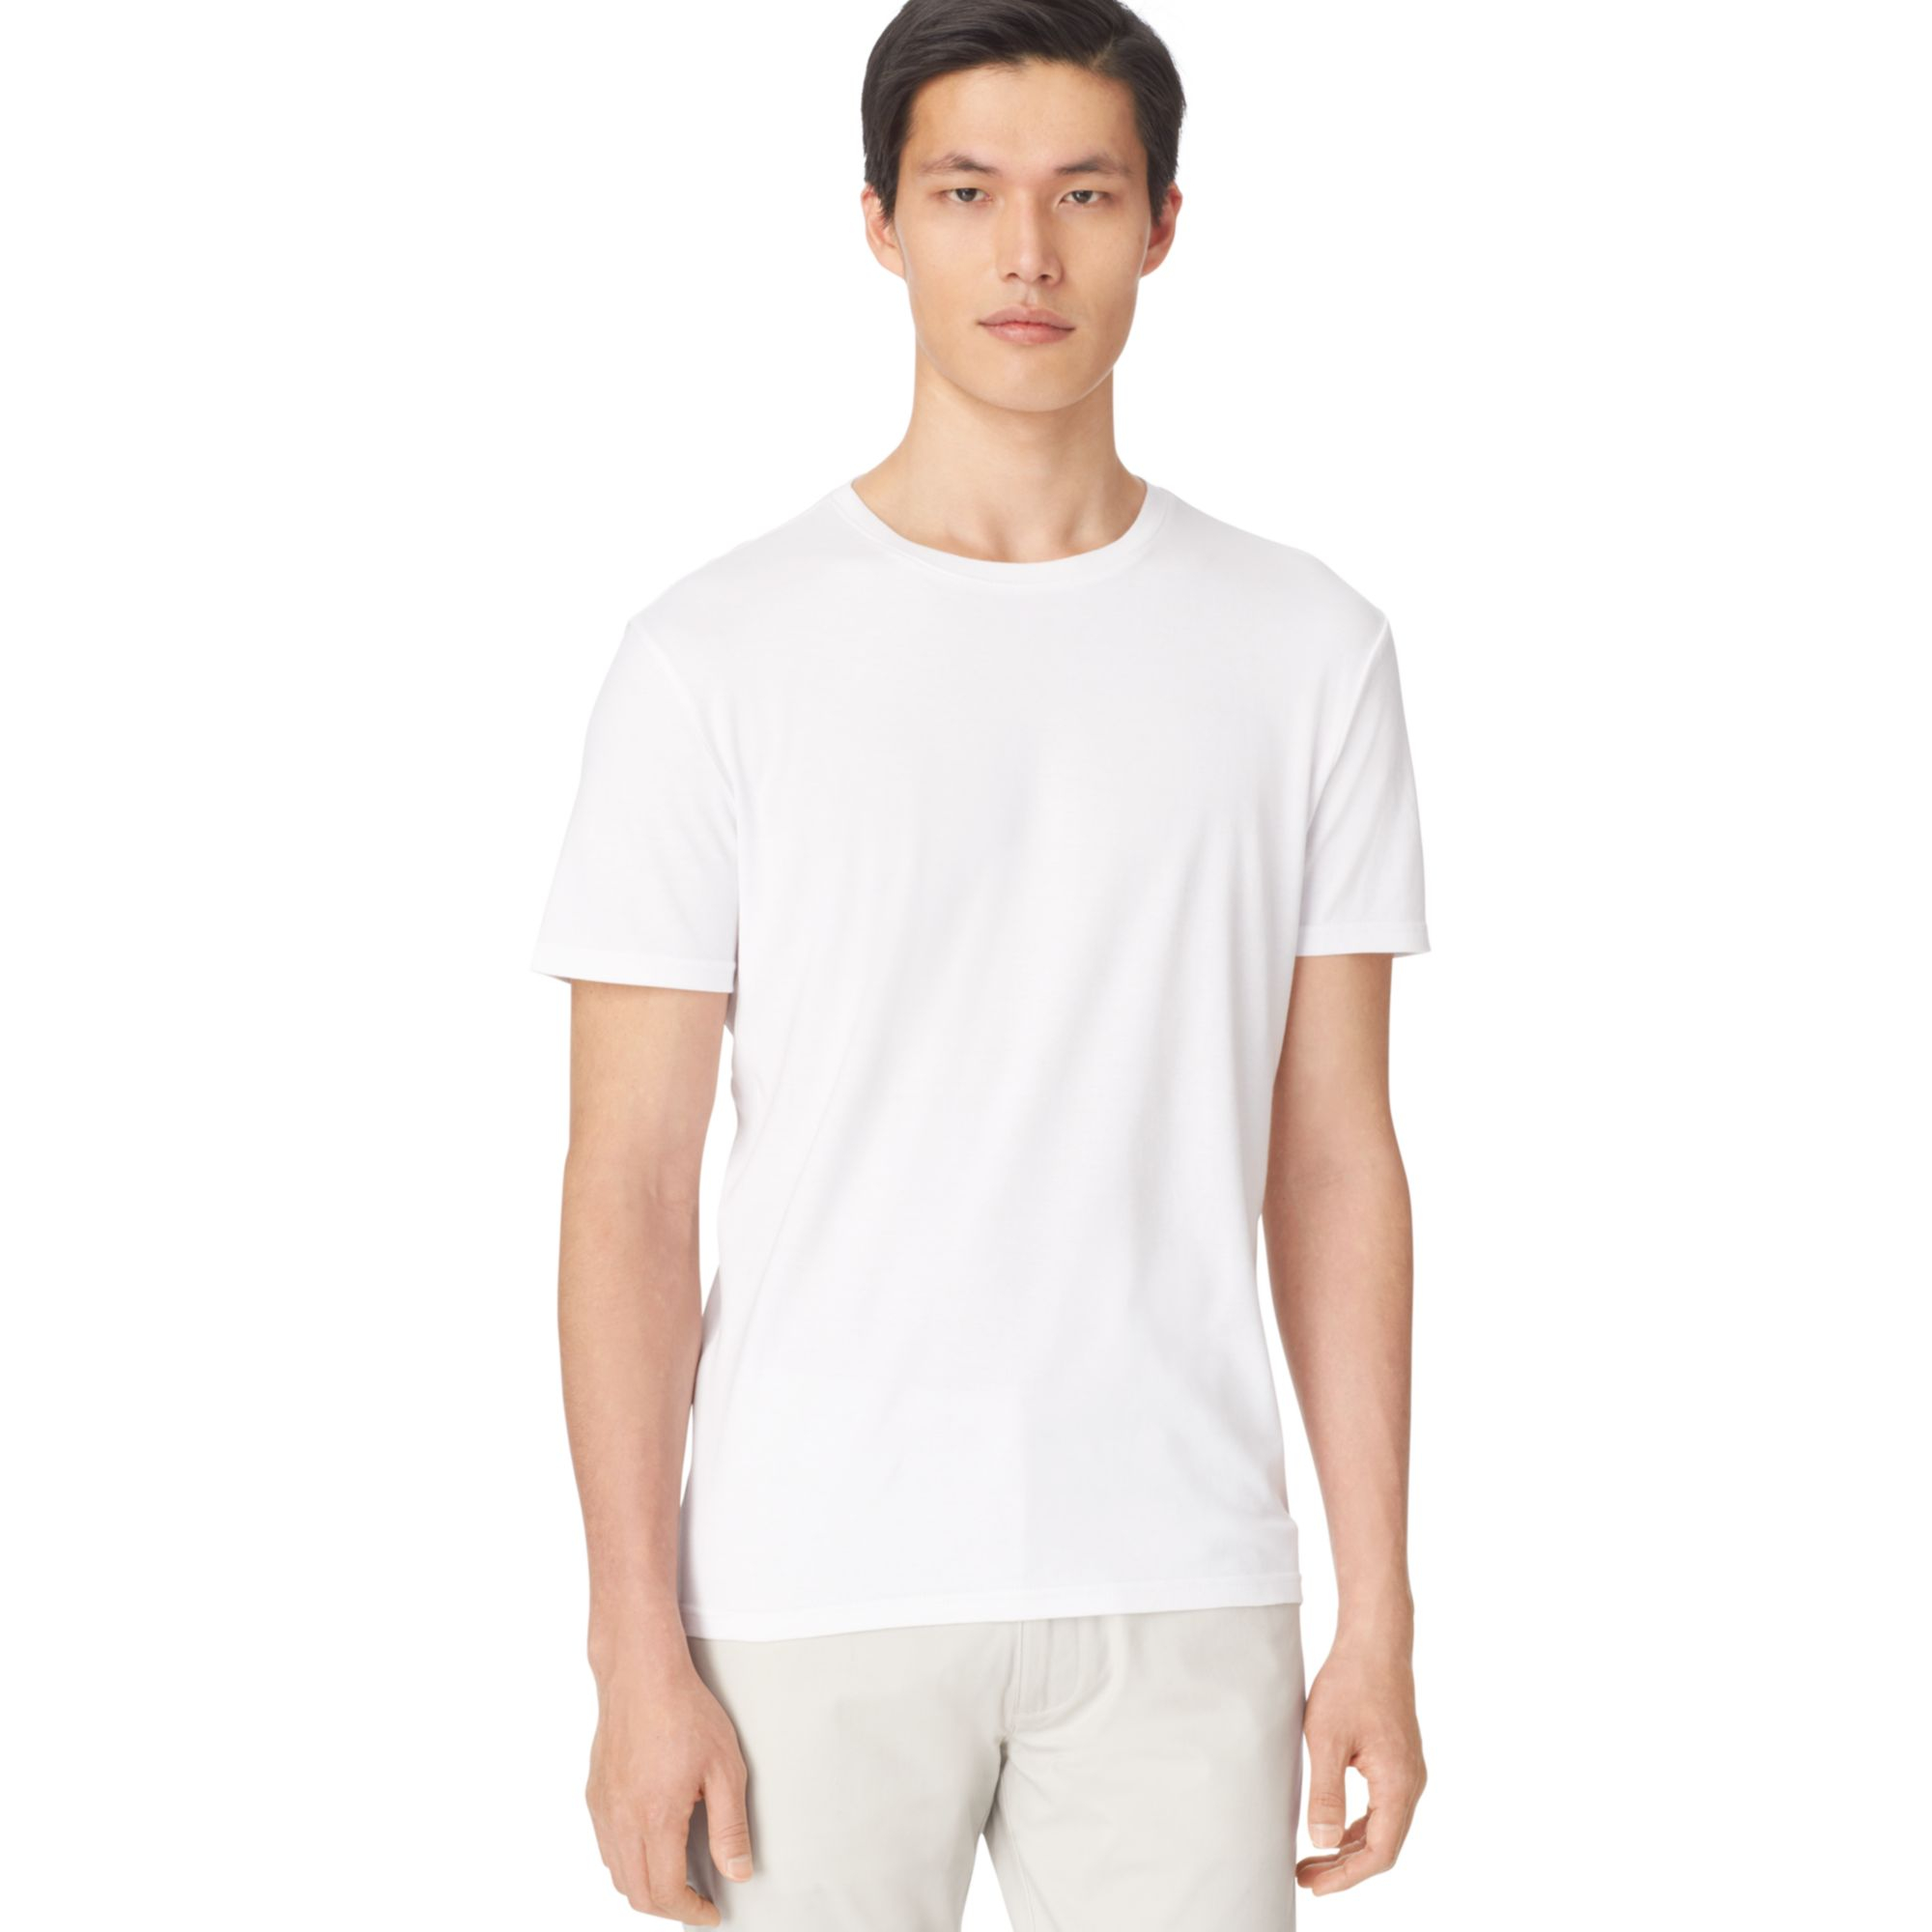 lyst calvin klein liquid cotton core t shirt in white for men. Black Bedroom Furniture Sets. Home Design Ideas